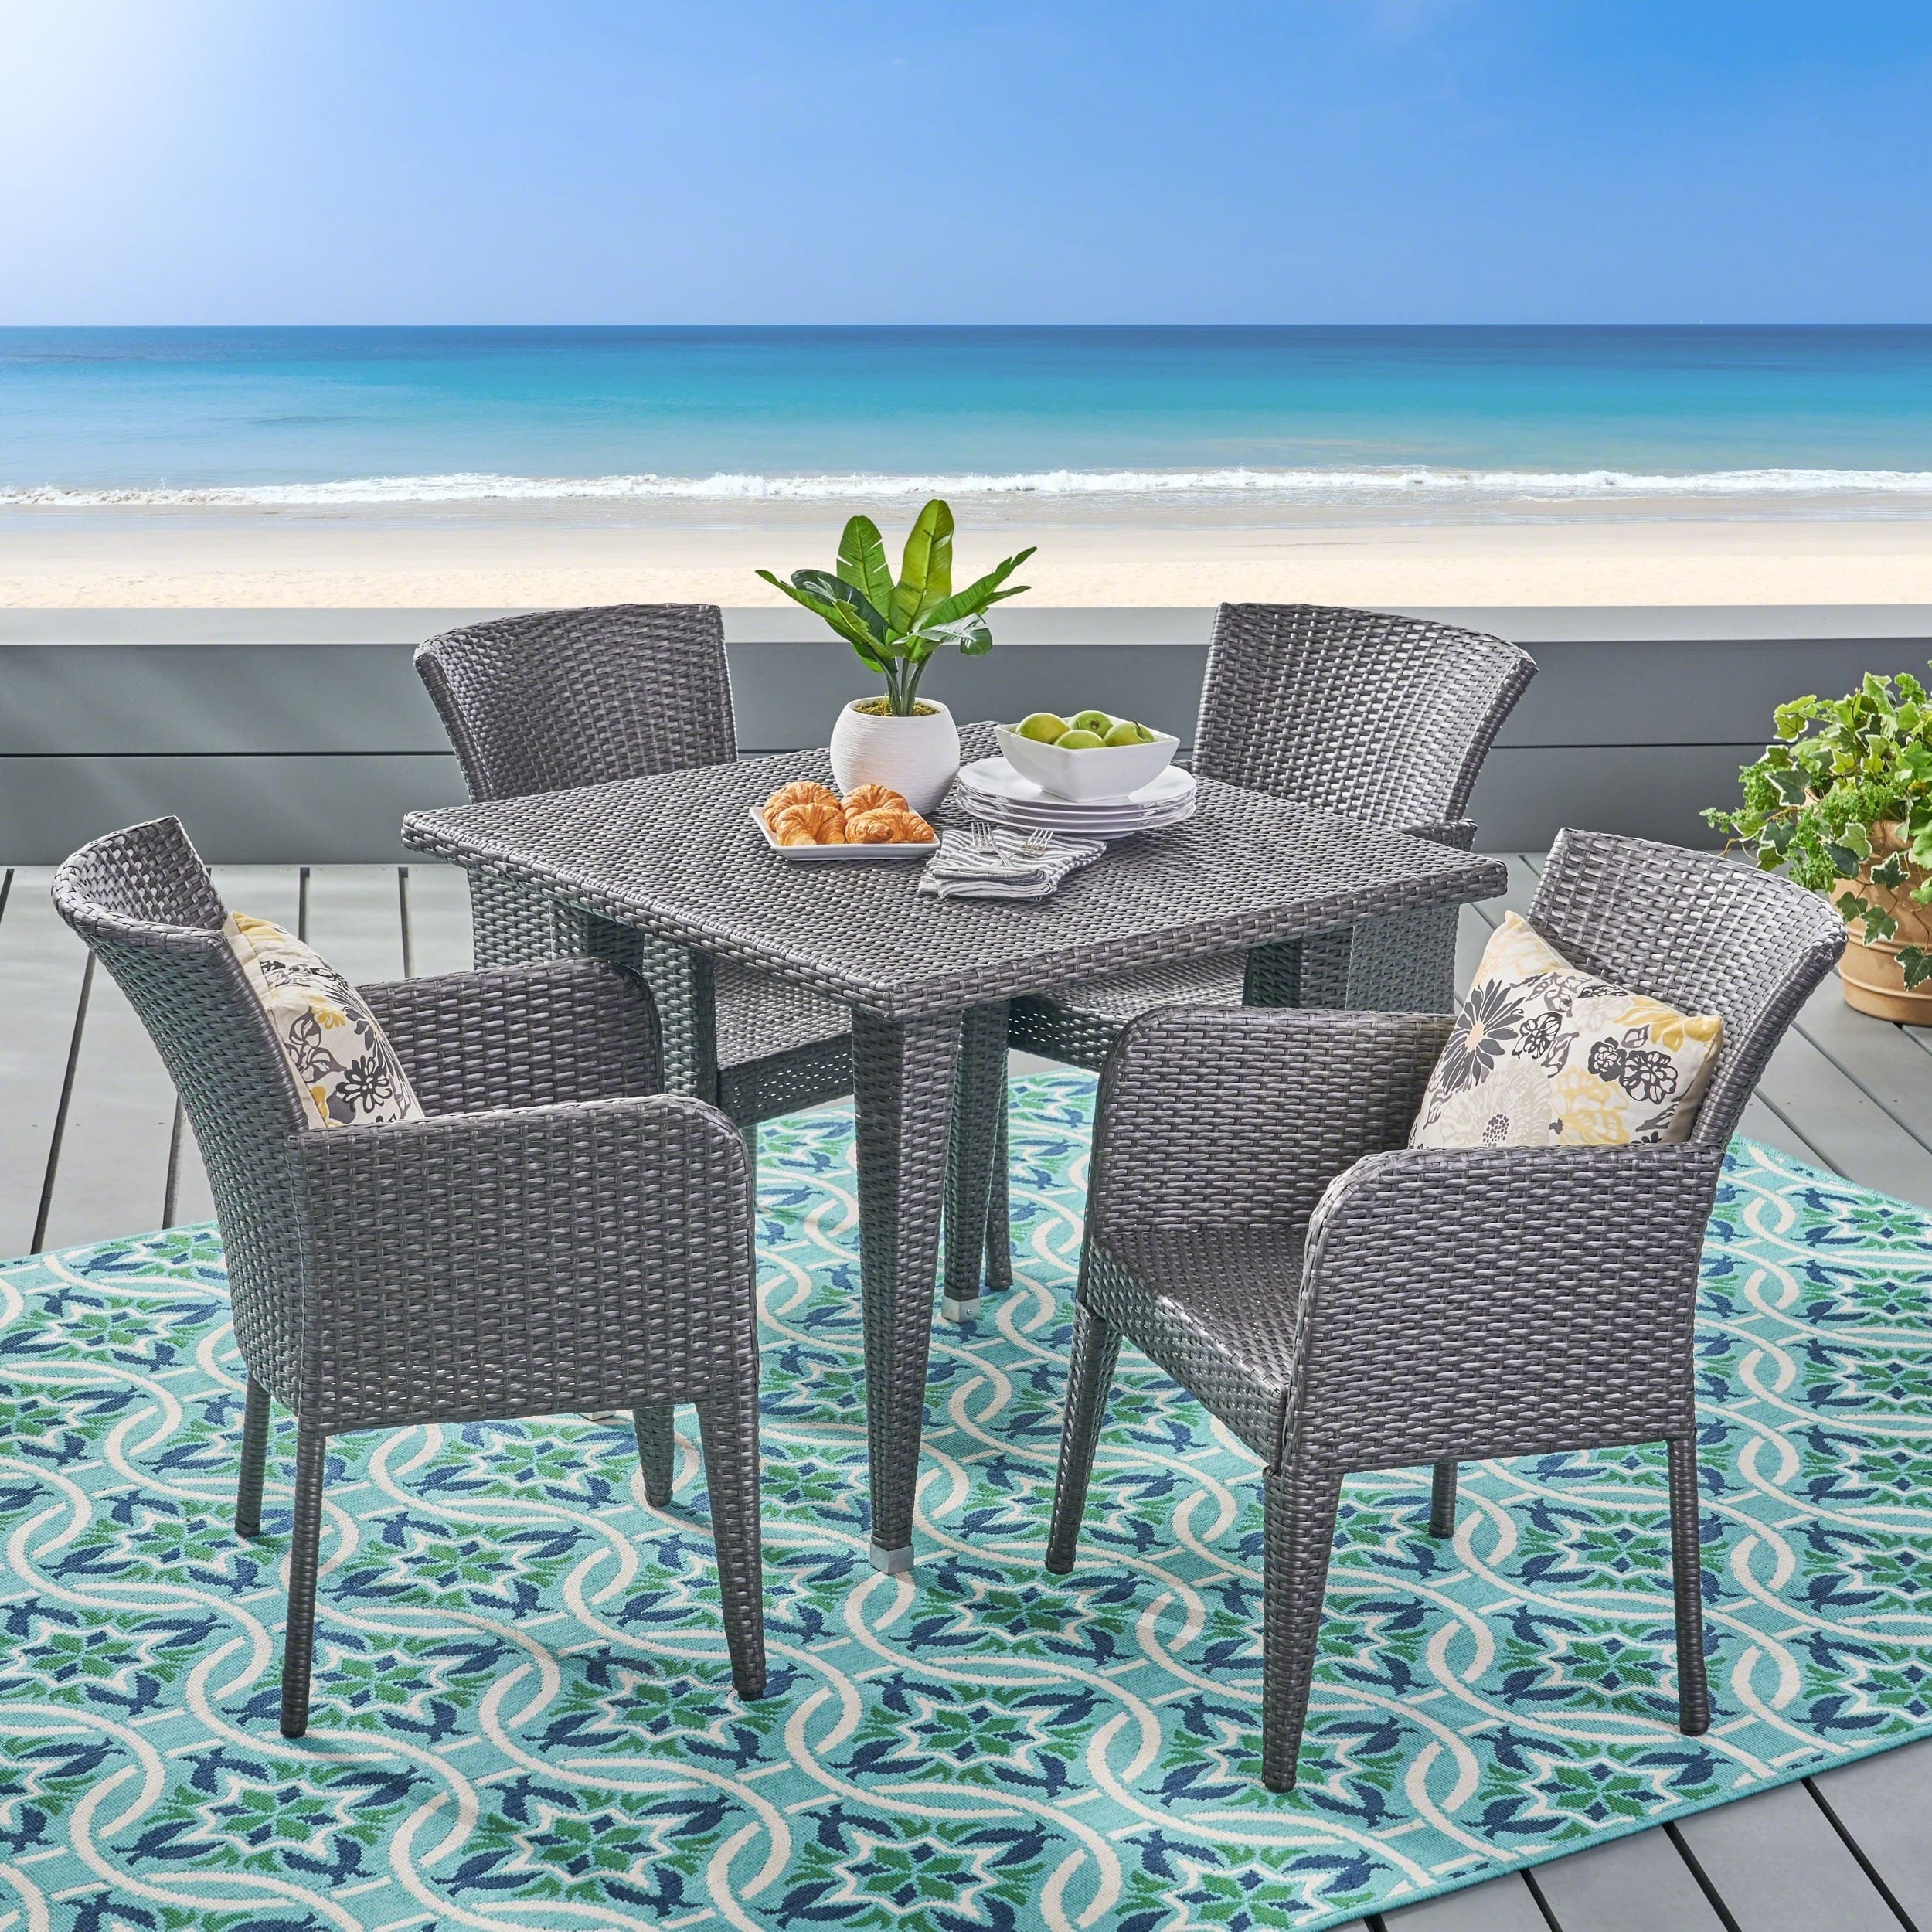 Christopher Knight Home Anaya Outdoor 5-piece Wicker Dining Set by